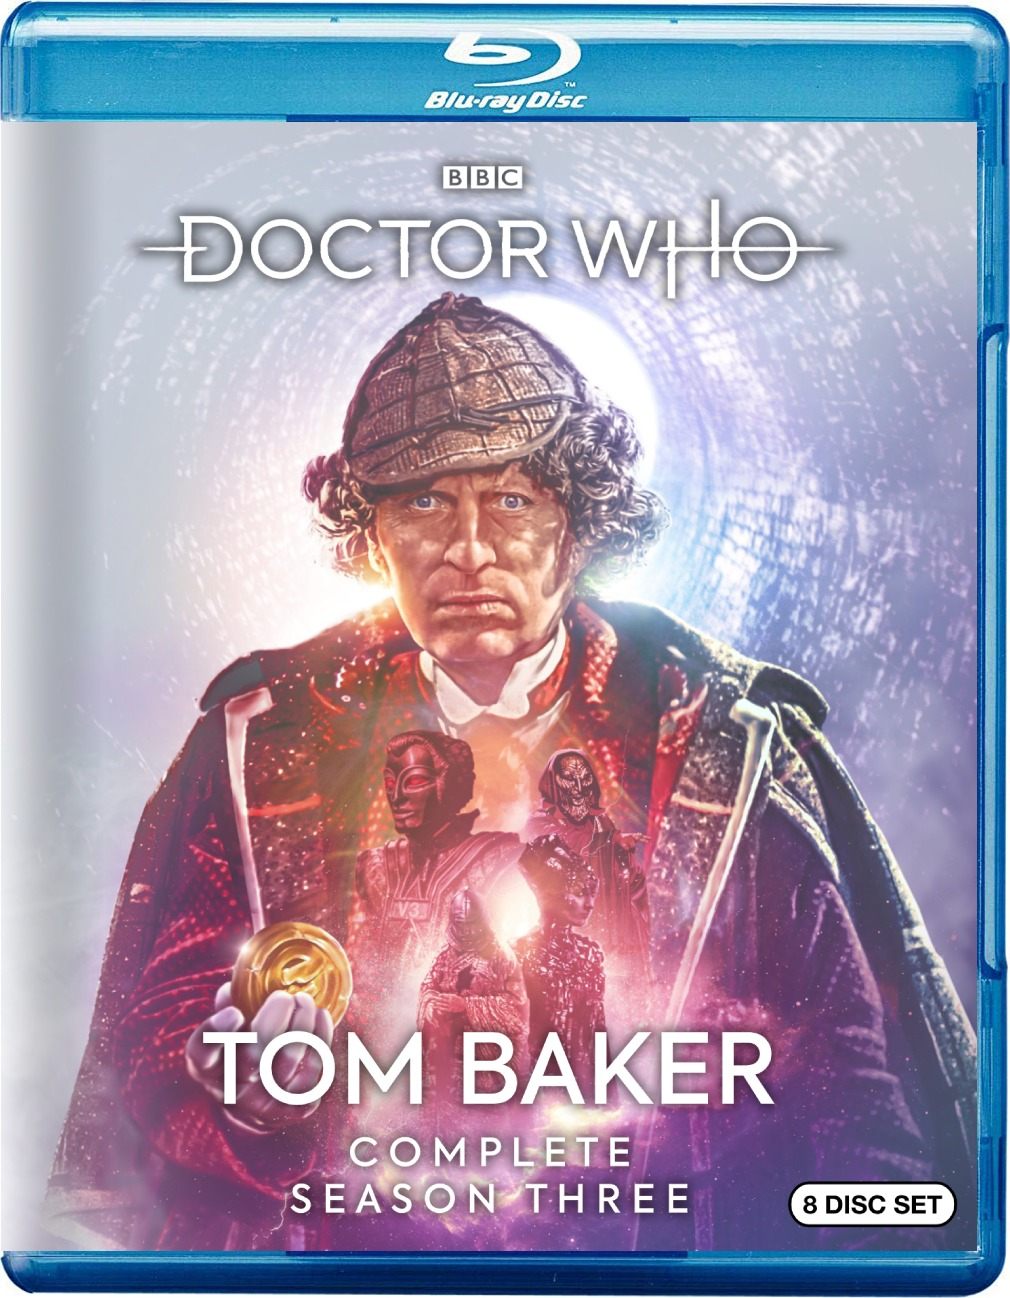 Doctor Who: Tom Baker - The Complete Season Three